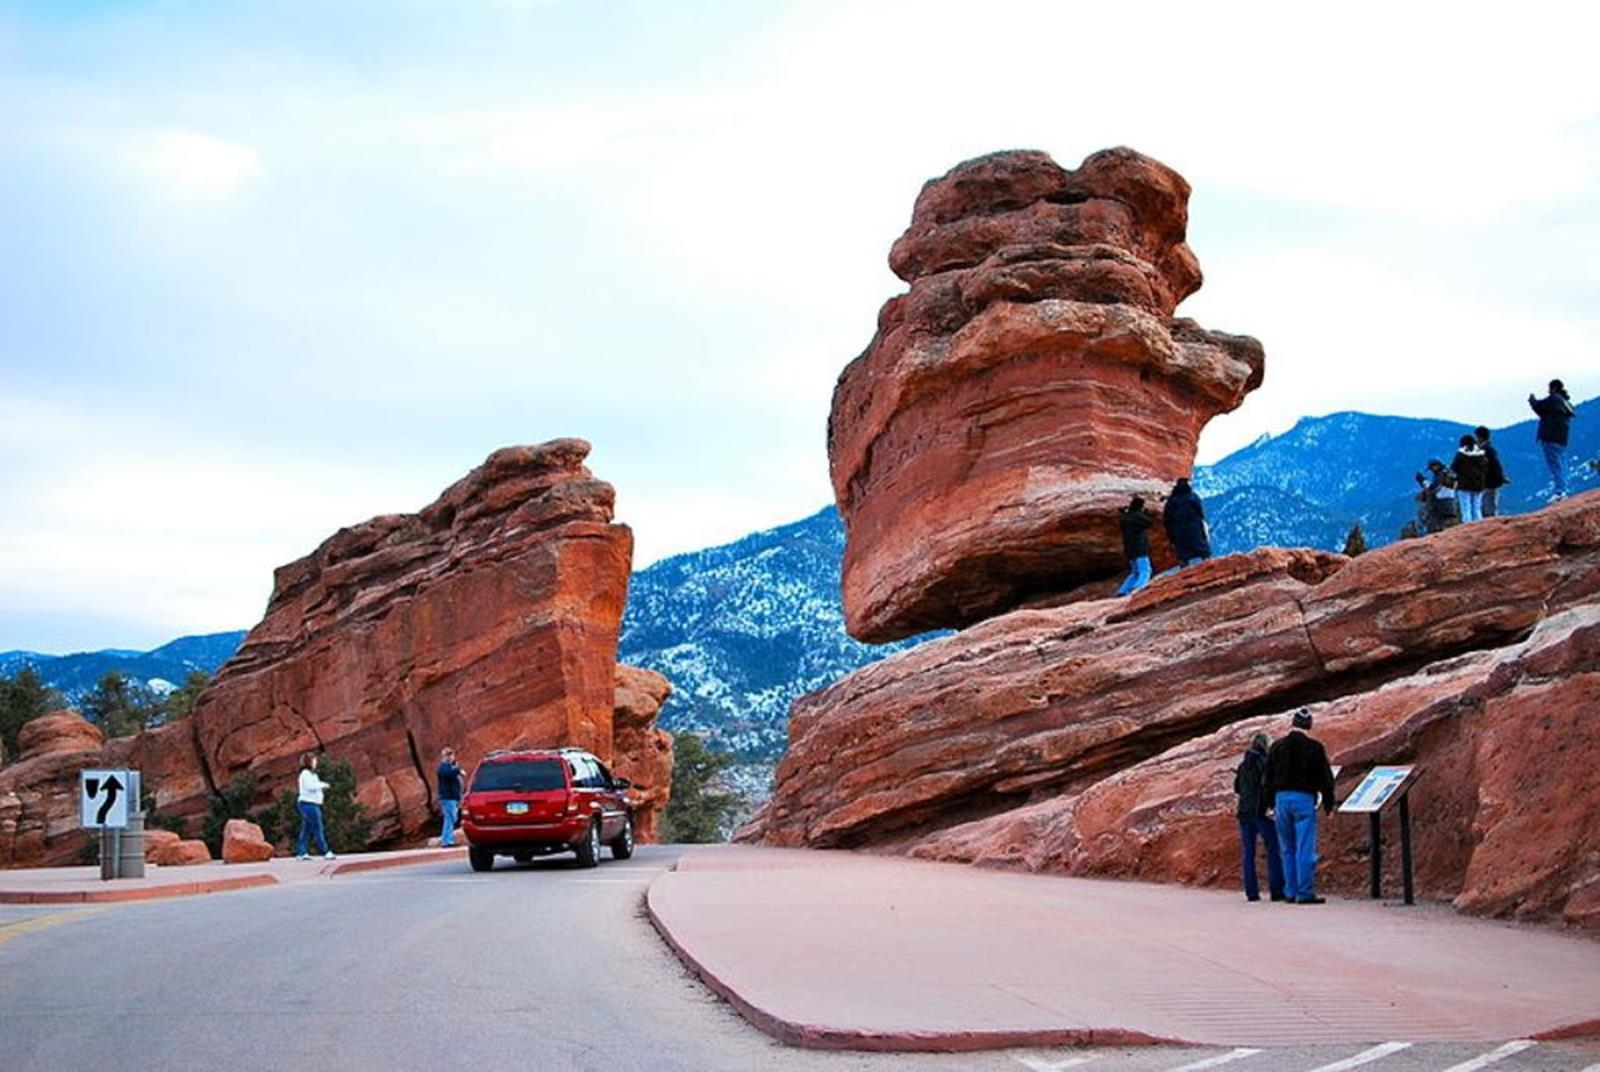 Steamboat Rock and Balanced Rock in 2010. Credit: AHodges7